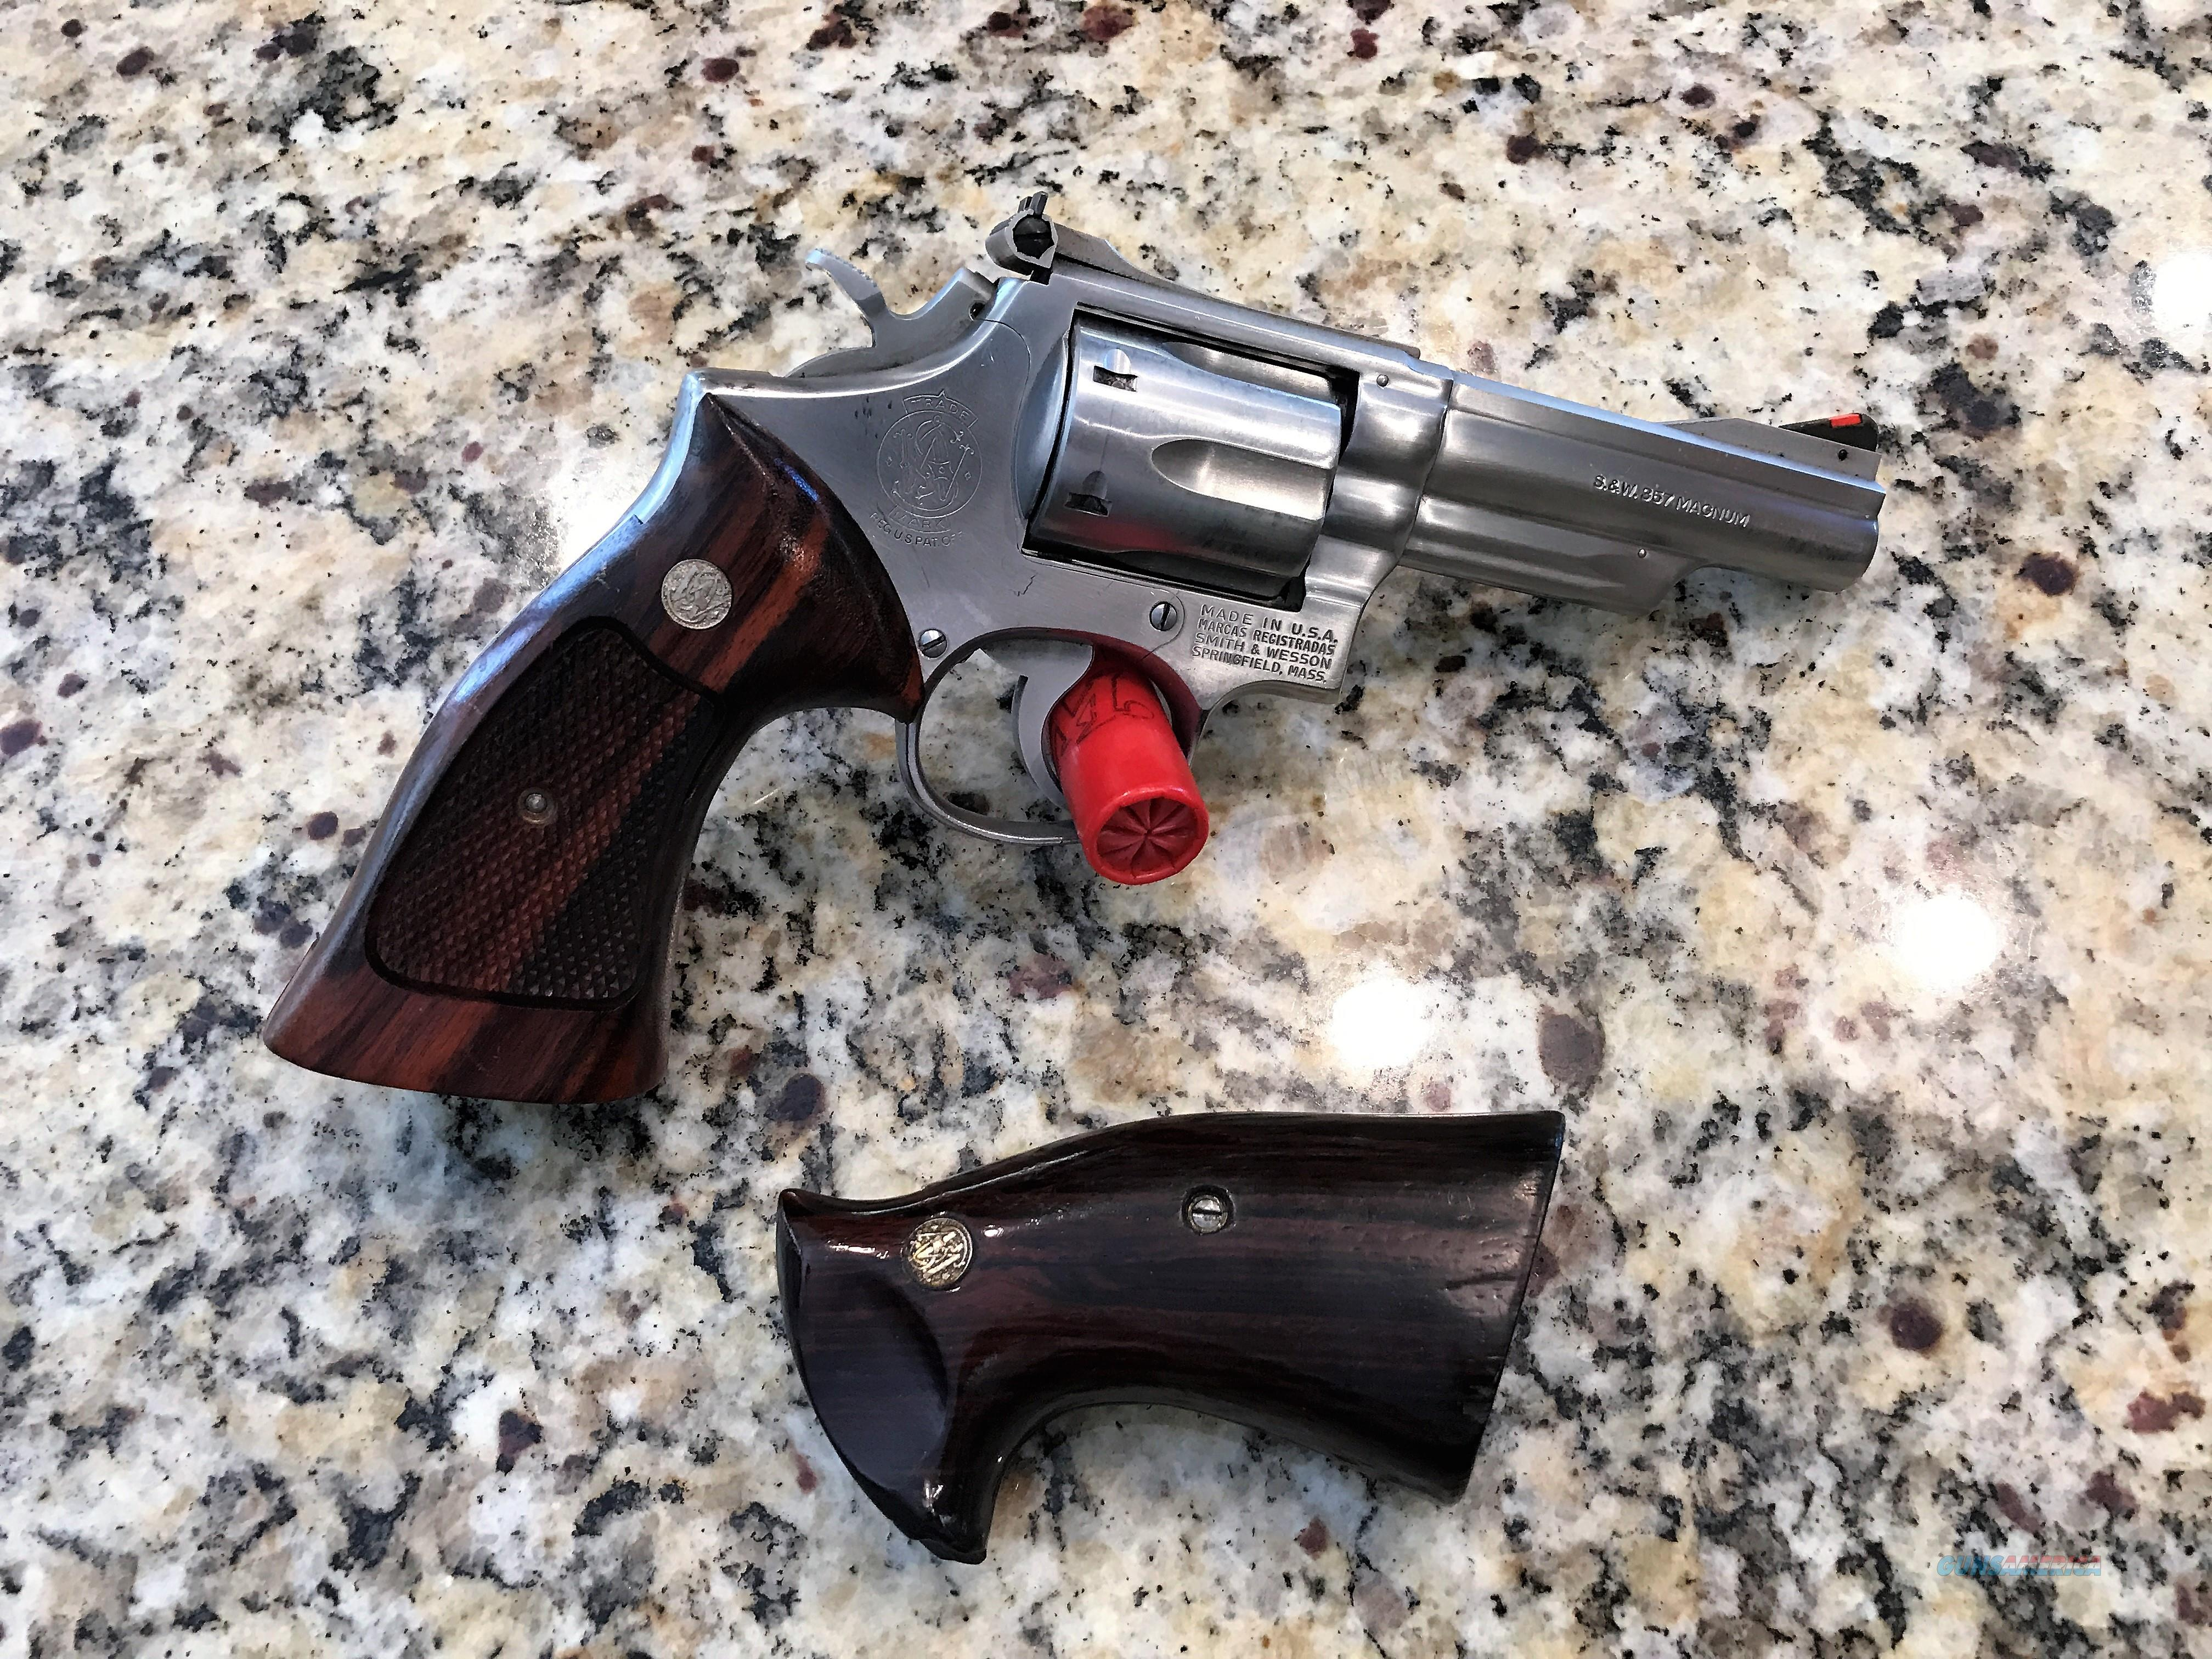 S&w model 66-2 dating a year of mfg